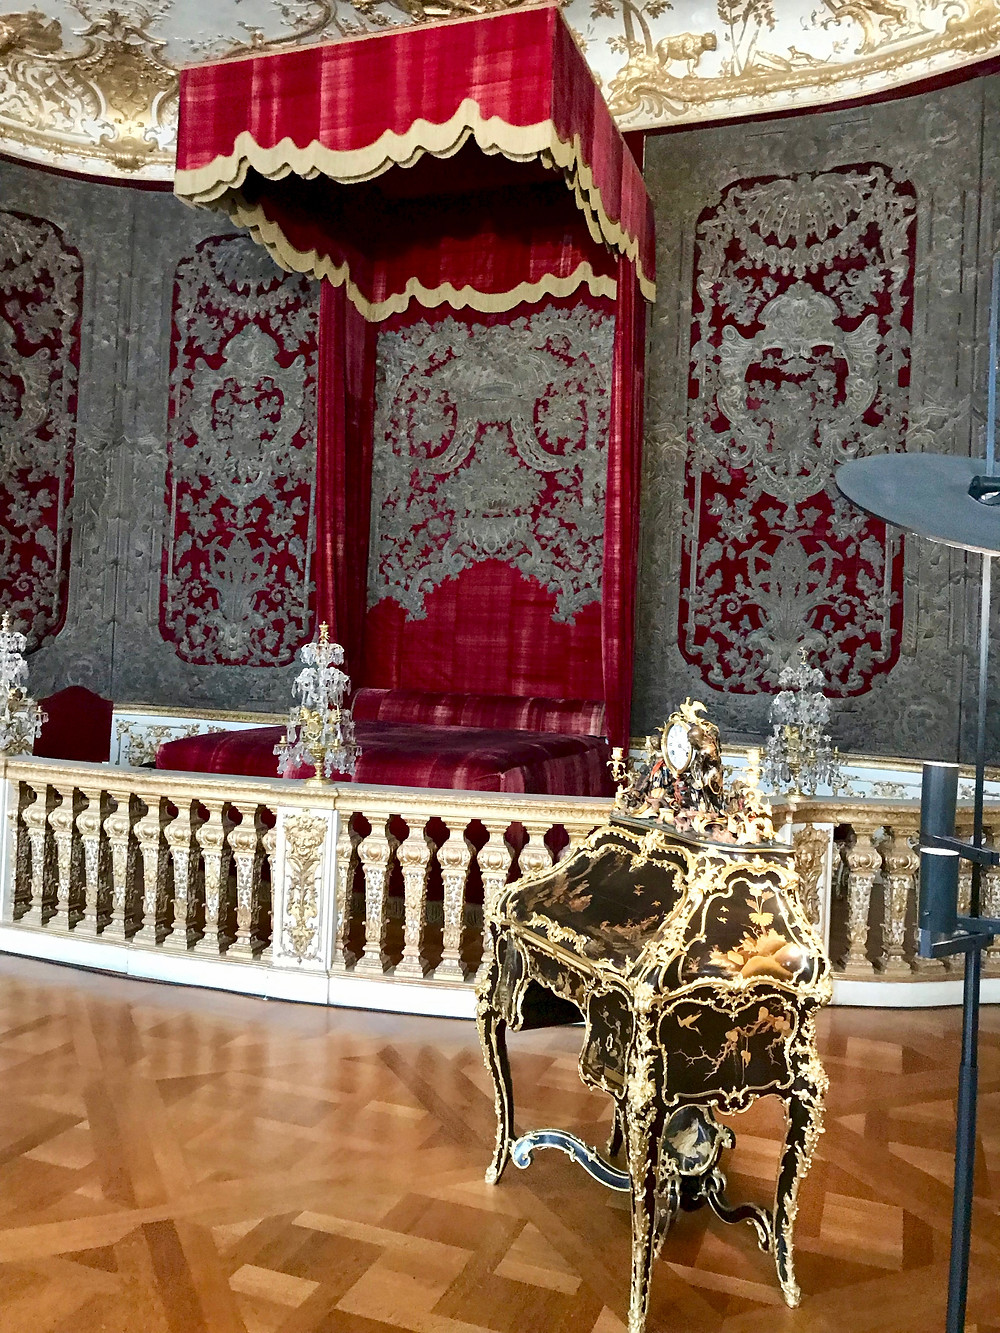 the royal bedroom -- for ceremonial purposes exclusively